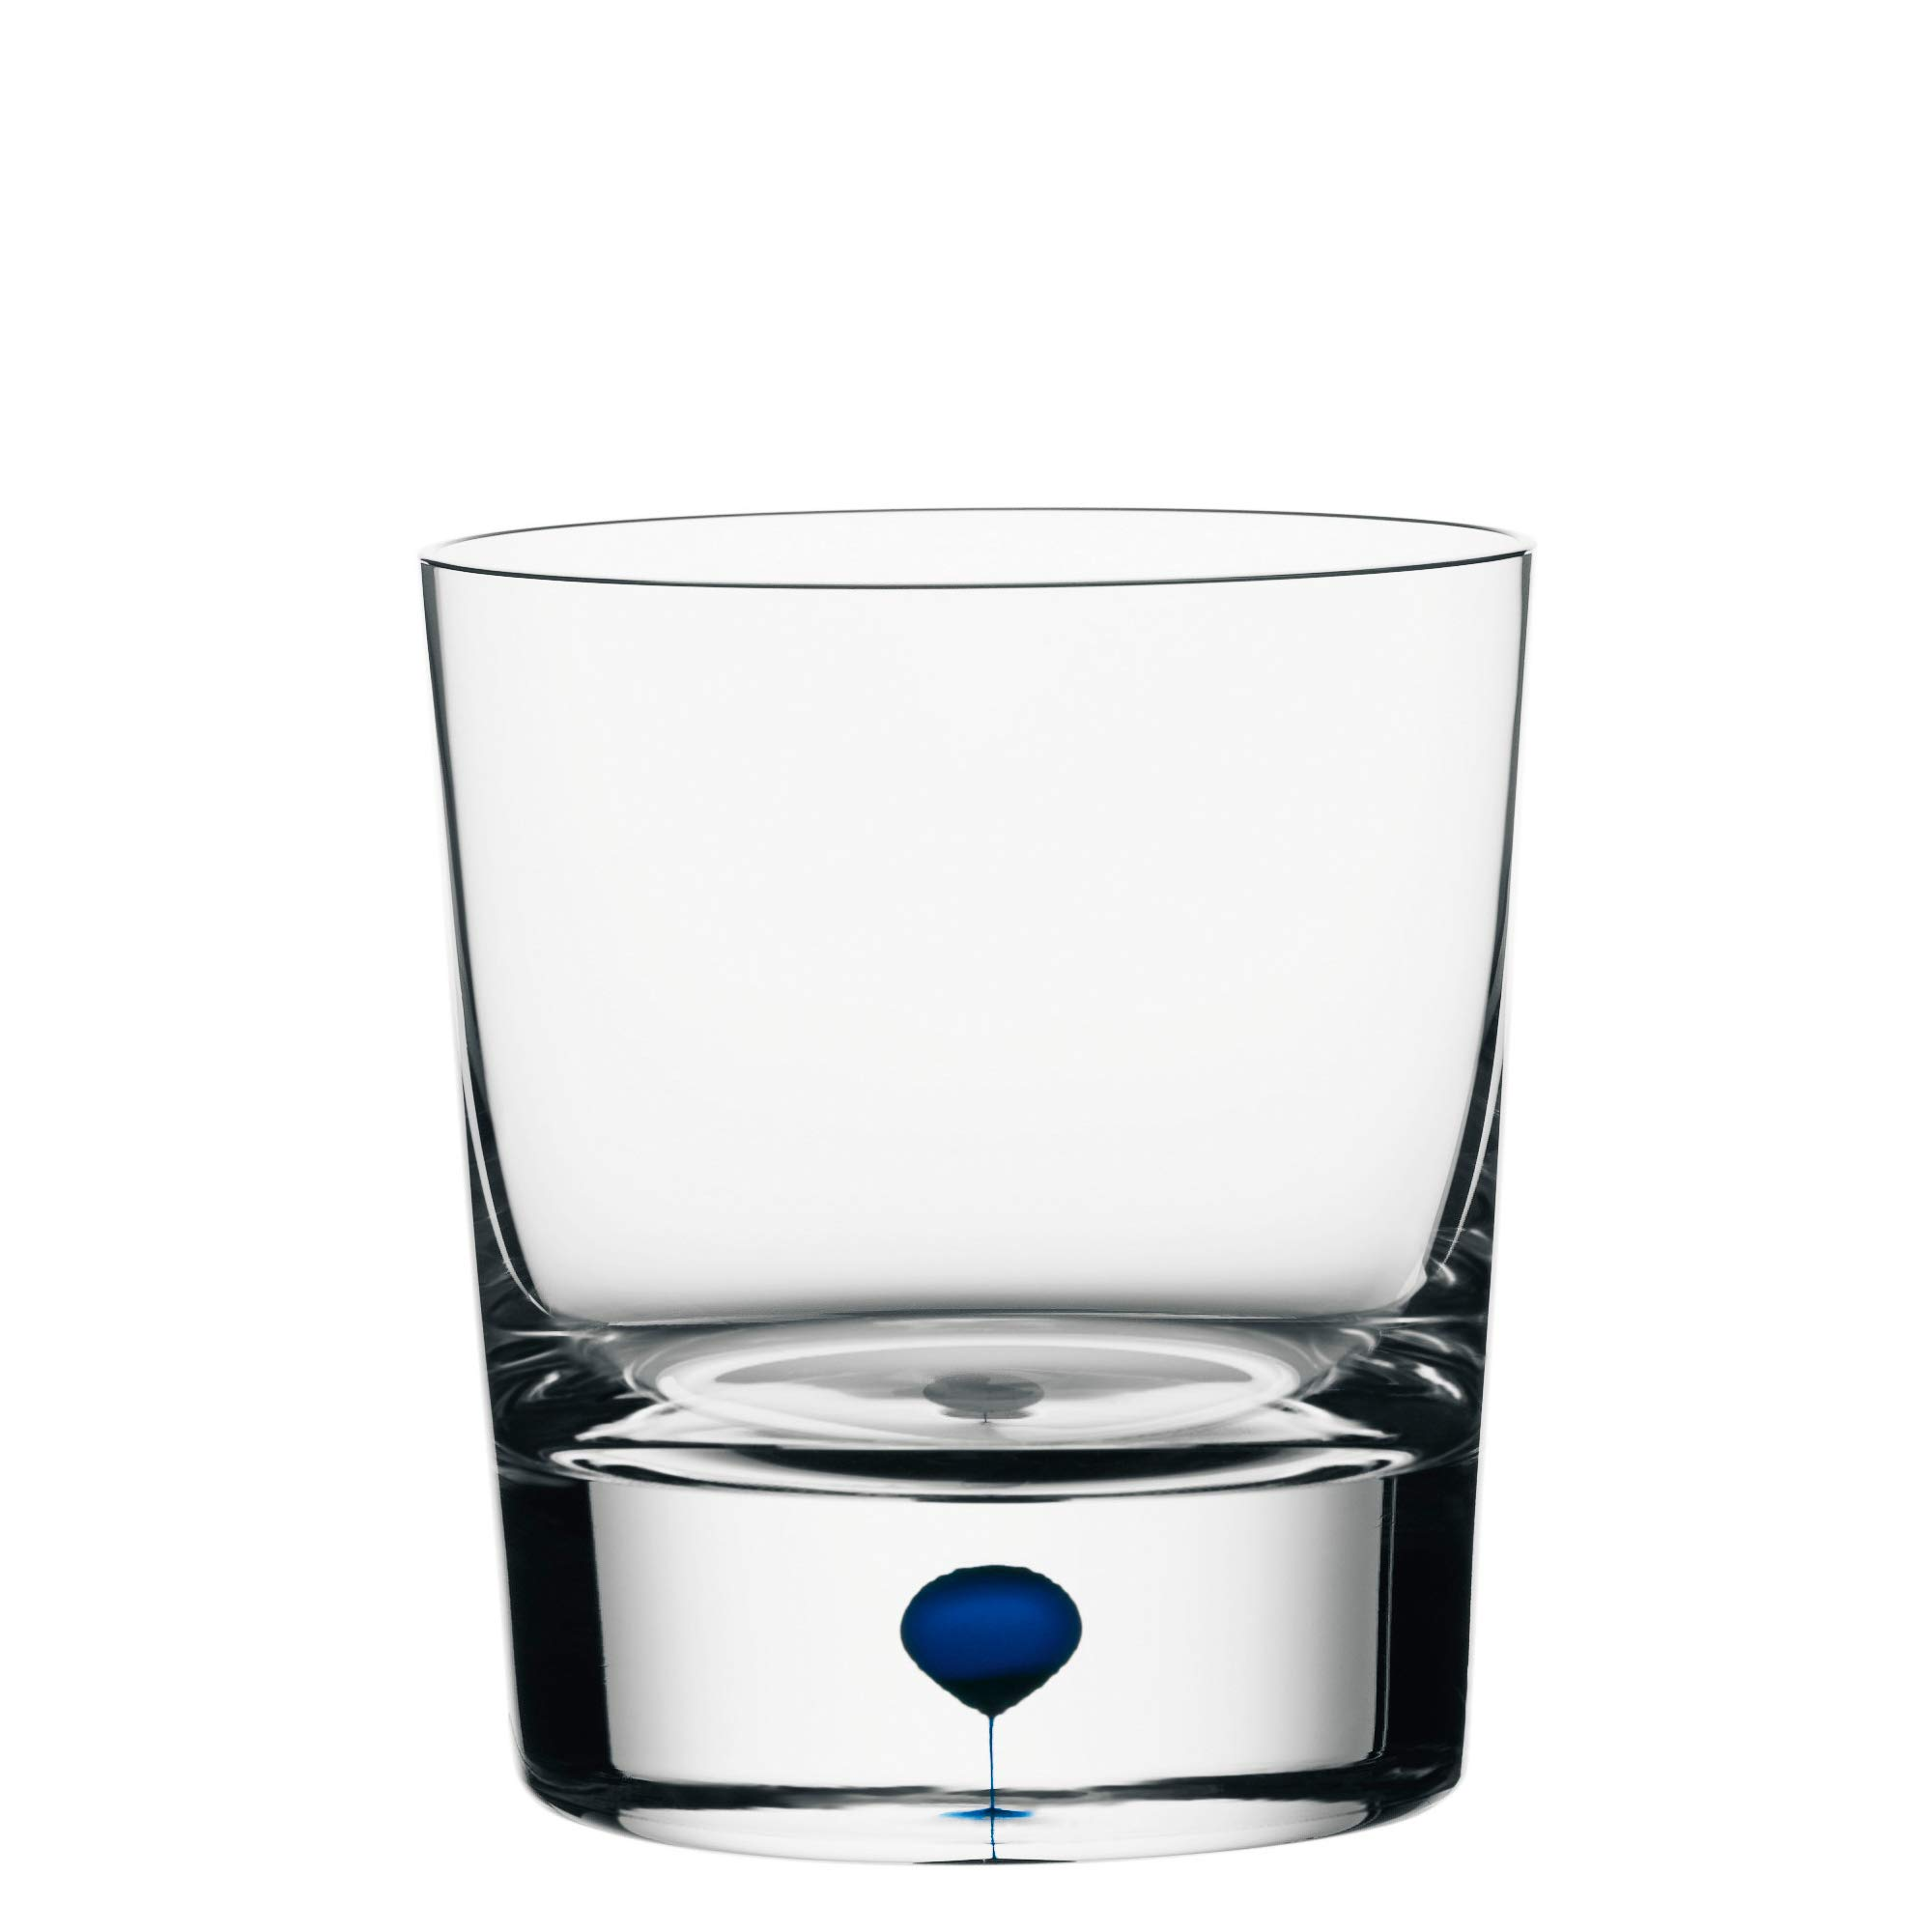 Orrefors 6257440 Intermezzo Blue 8.3 Ounce Old Fashioned/Whiskey Glass, Clesr